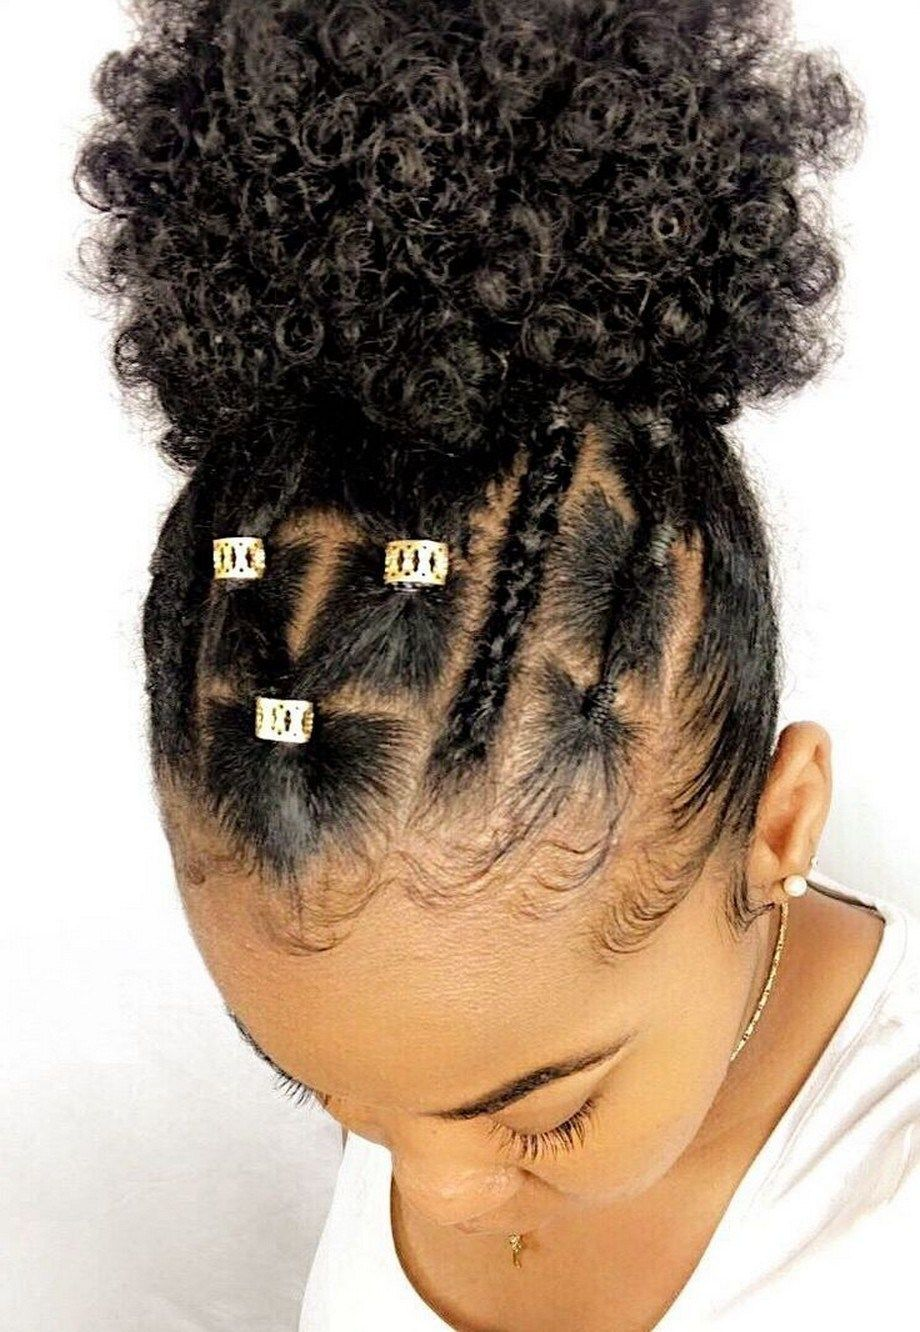 37 Back To School Hairstyles For Your Little Natural Girl Schoolblac Protective Hairstyles For Natural Hair Girls Natural Hairstyles Short Natural Hair Styles